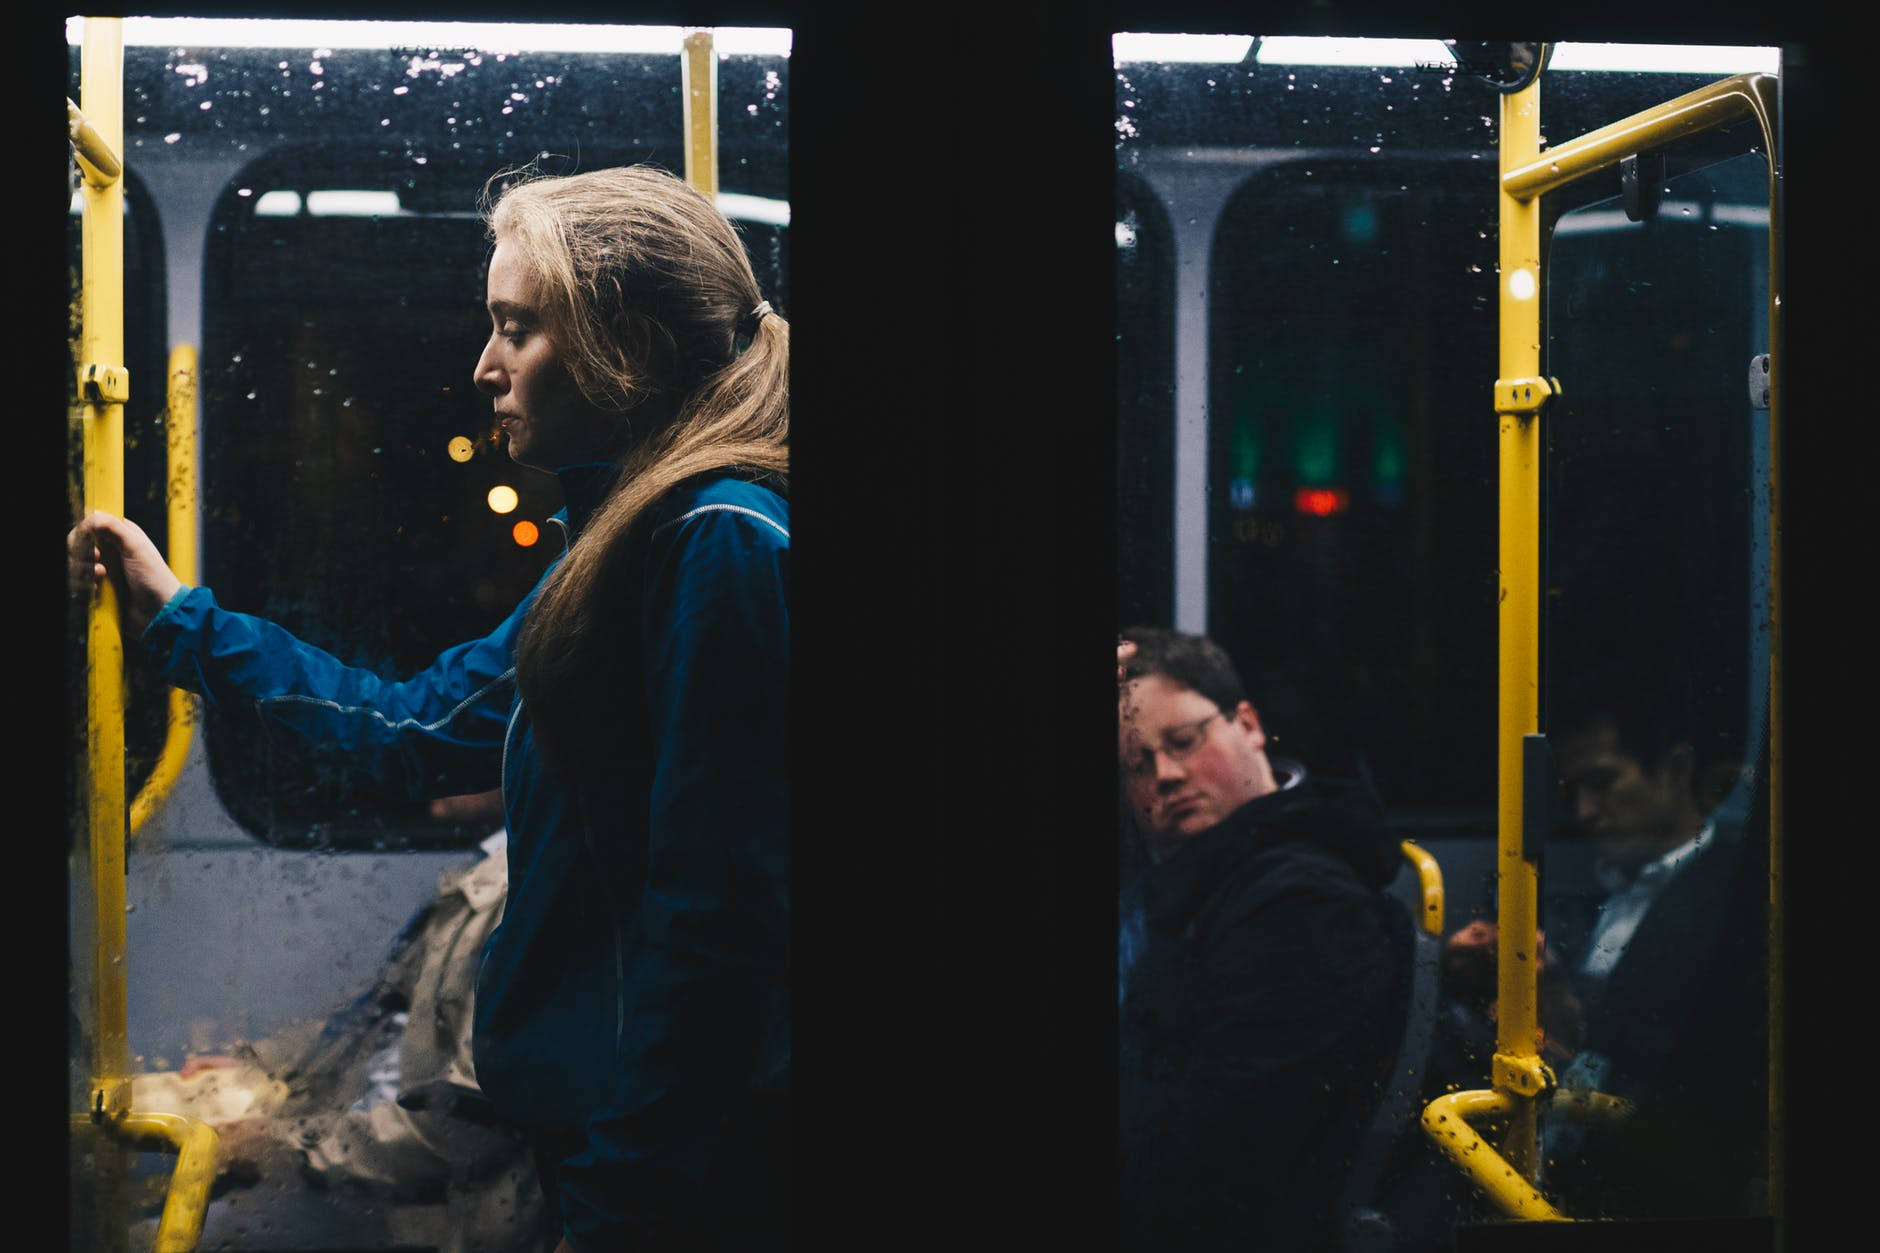 image of someone looking lonely on a bus